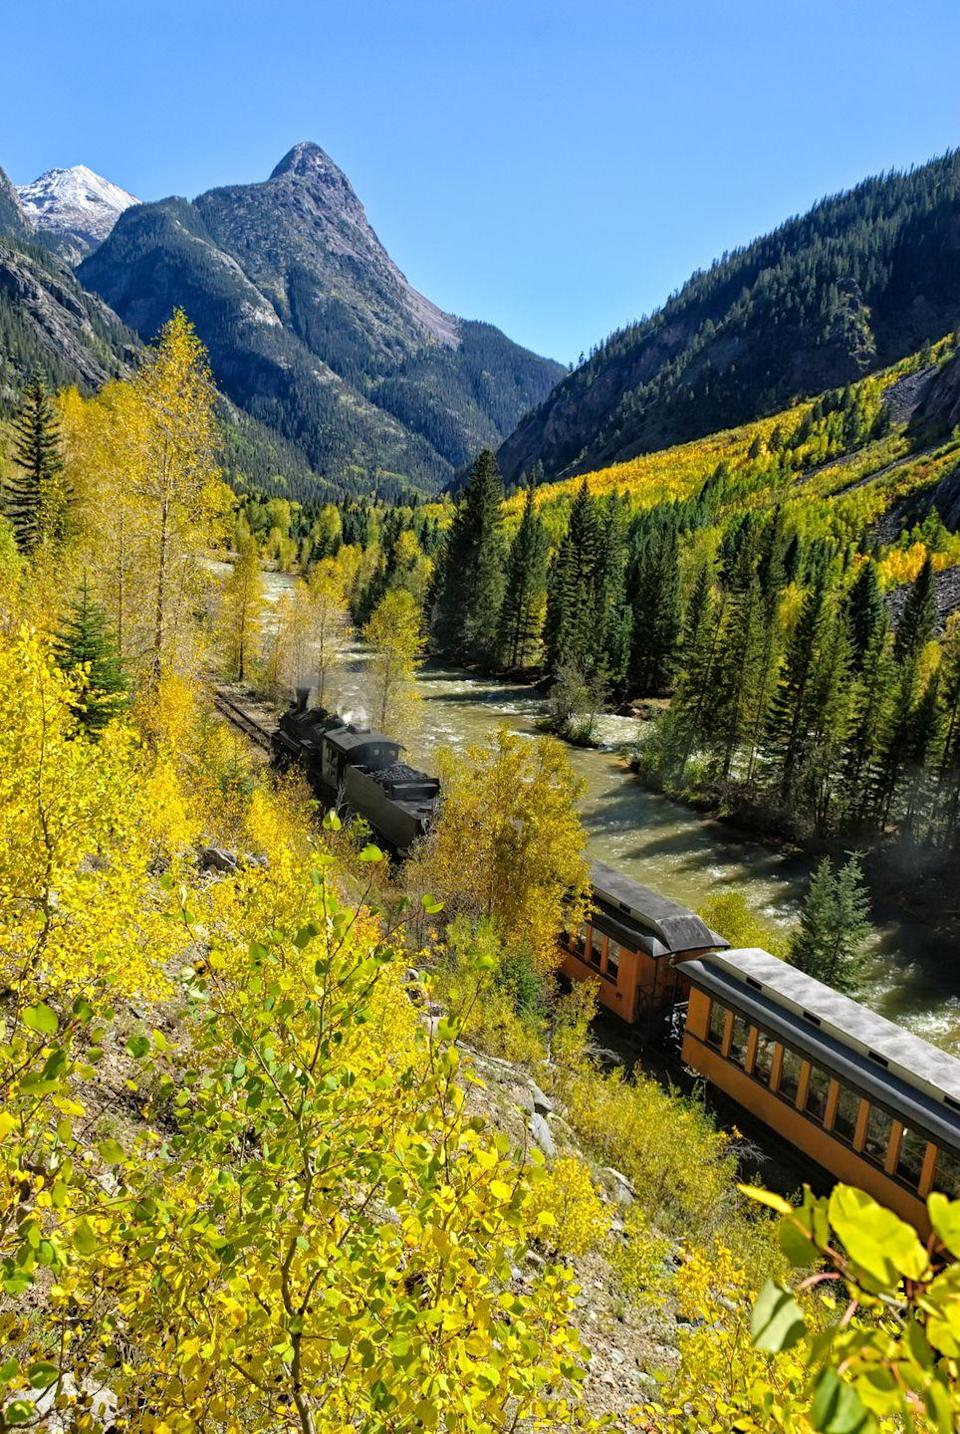 """<p>Even if it's to a place a few towns over, traveling by train will make you feel like you're on a journey. Your kids will especially love looking out the window and watching everything pass by. Pay a visit to one of the <a href=""""https://www.countryliving.com/life/travel/g2294/must-visit-small-towns-across-america/"""" rel=""""nofollow noopener"""" target=""""_blank"""" data-ylk=""""slk:best small towns in America"""" class=""""link rapid-noclick-resp"""">best small towns in America</a> if you live nearby.</p>"""